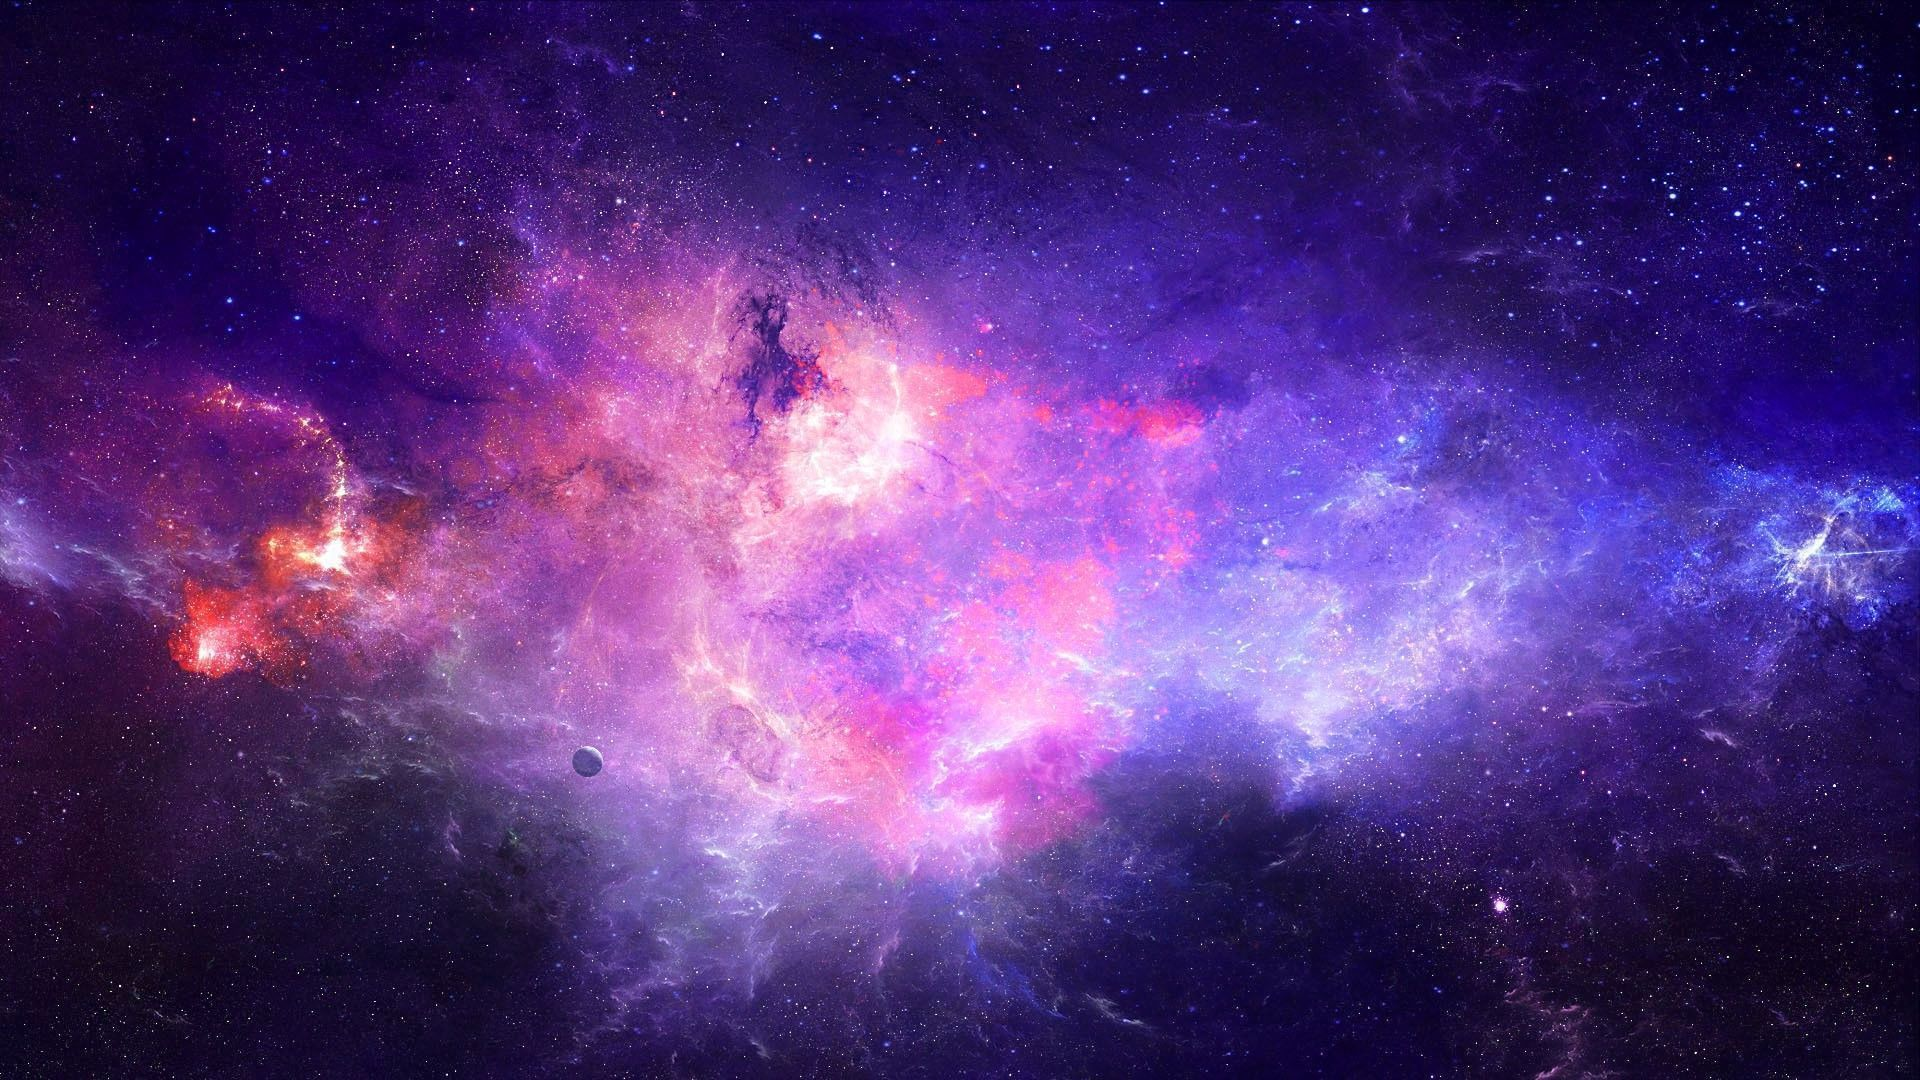 best Galaxy wallpaper ideas on Pinterest Blue galaxy